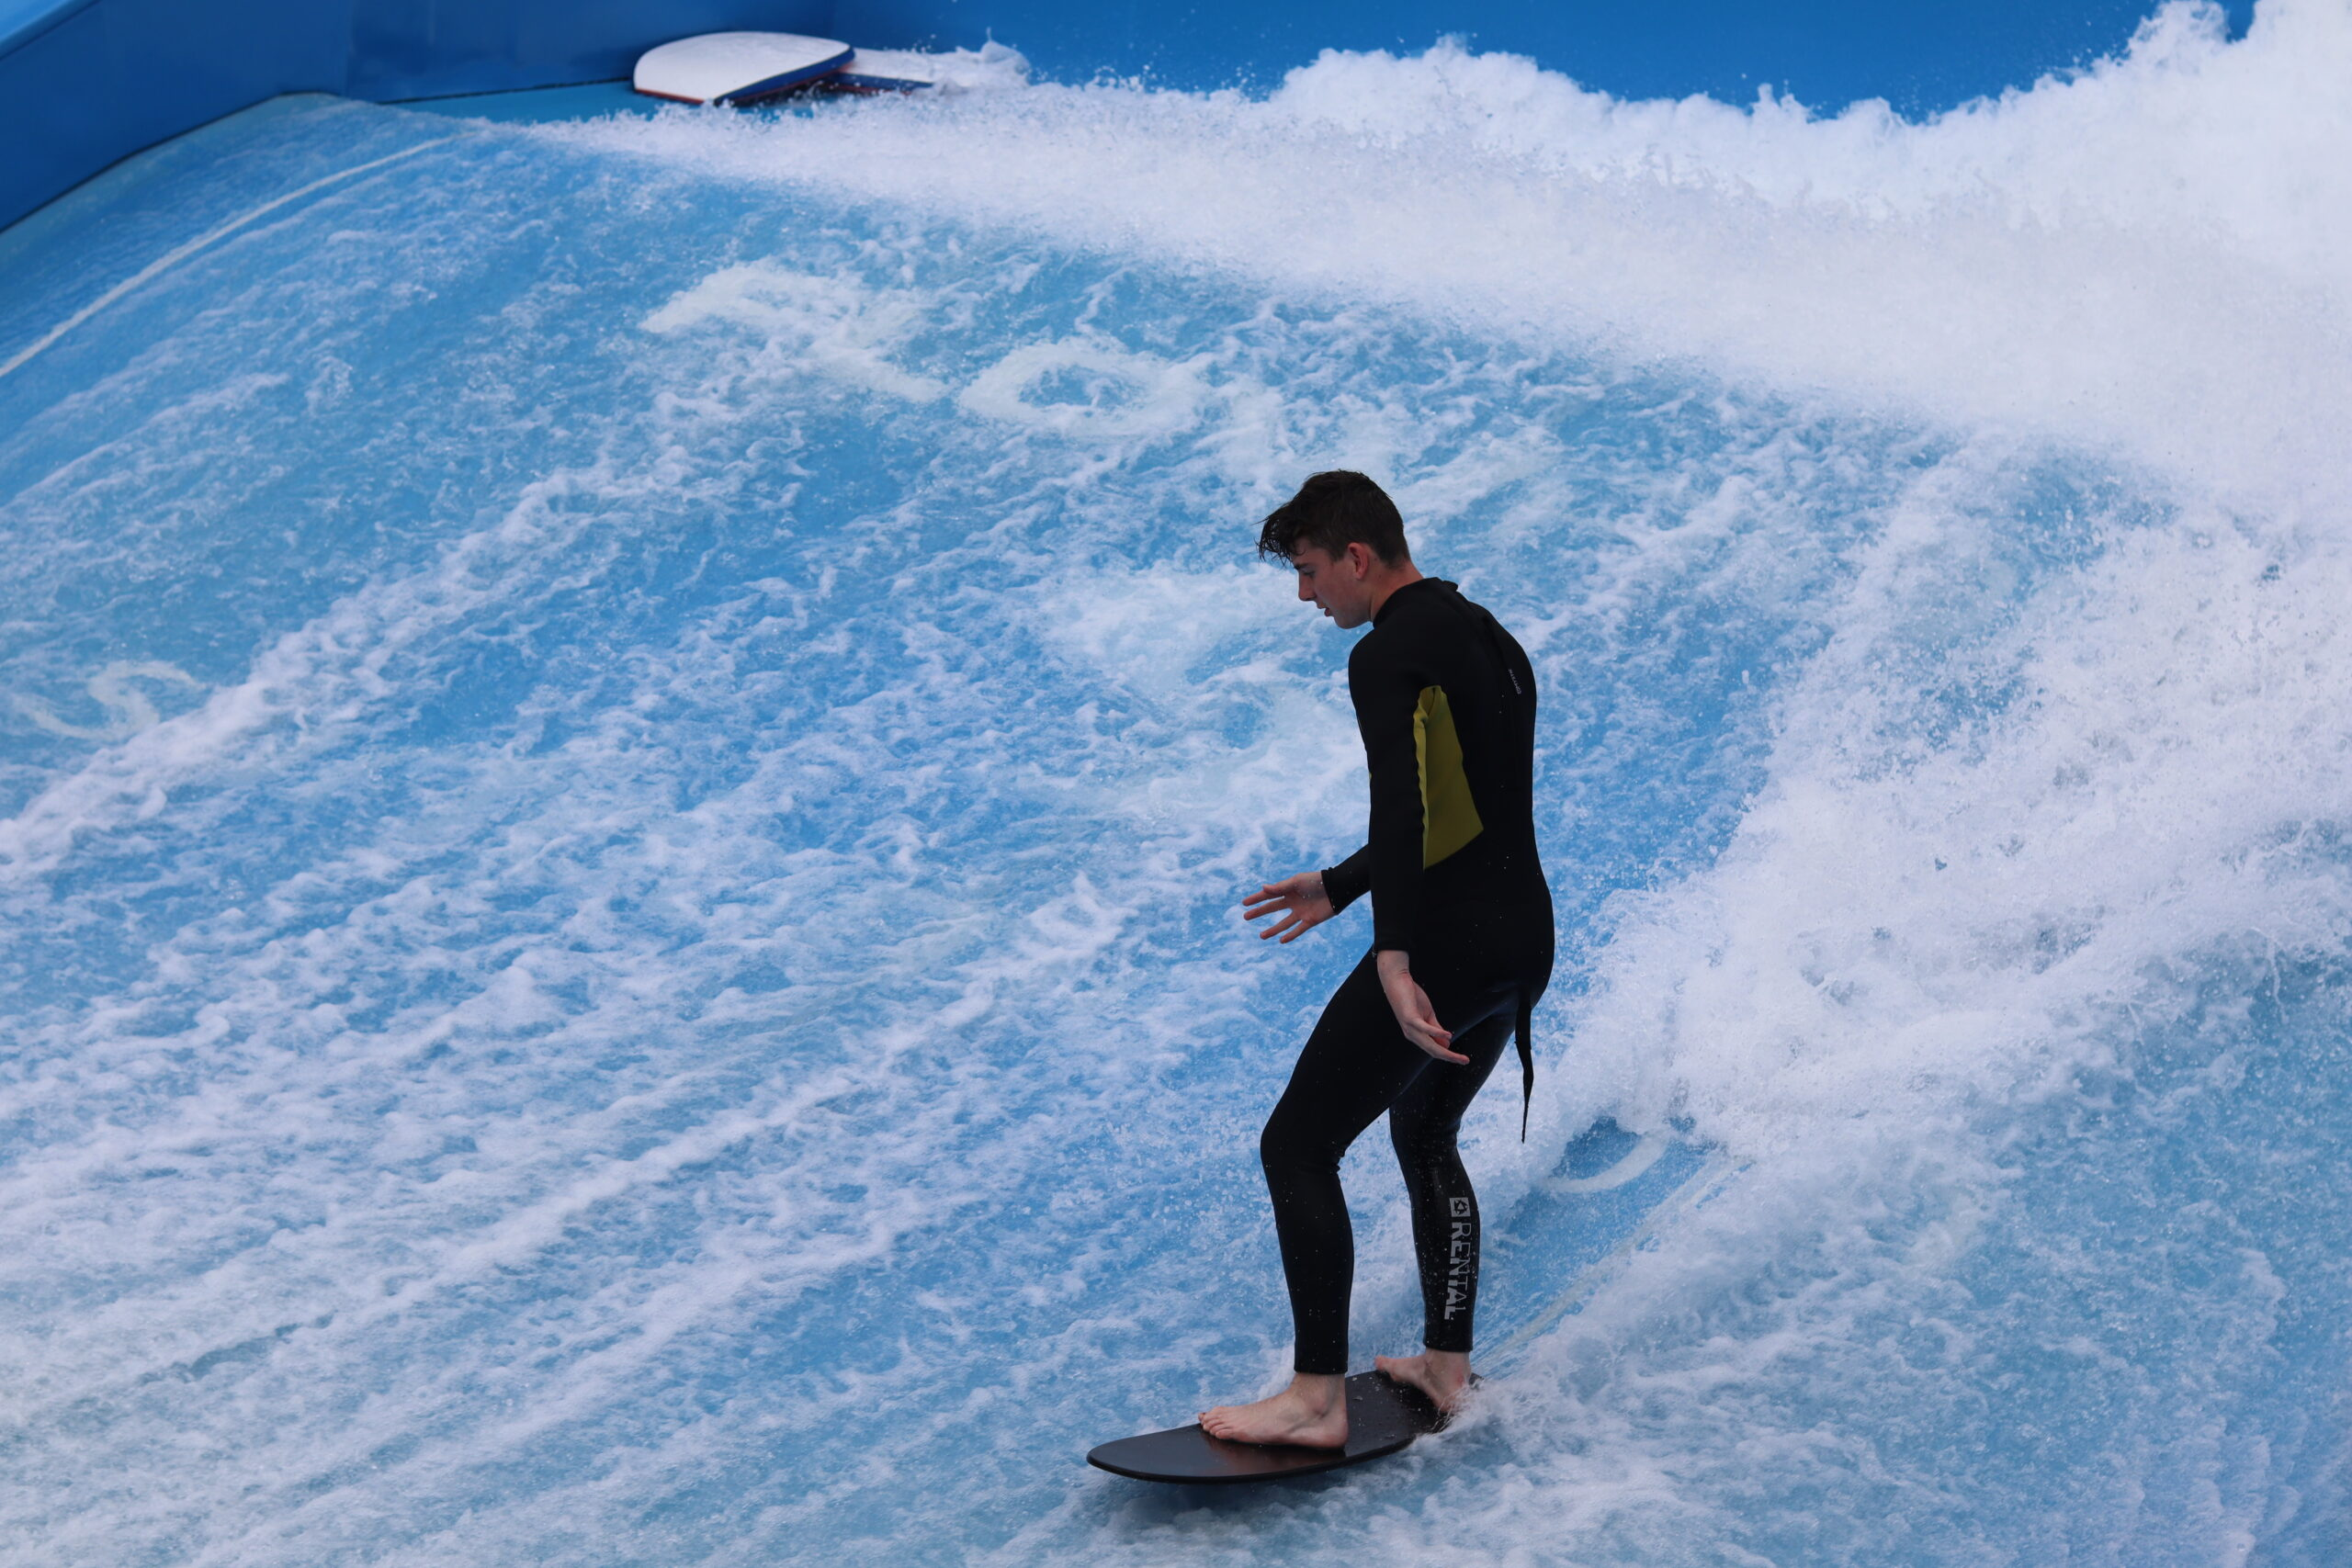 Flowrider at Rettallack: things to do with teenagers in cornwall